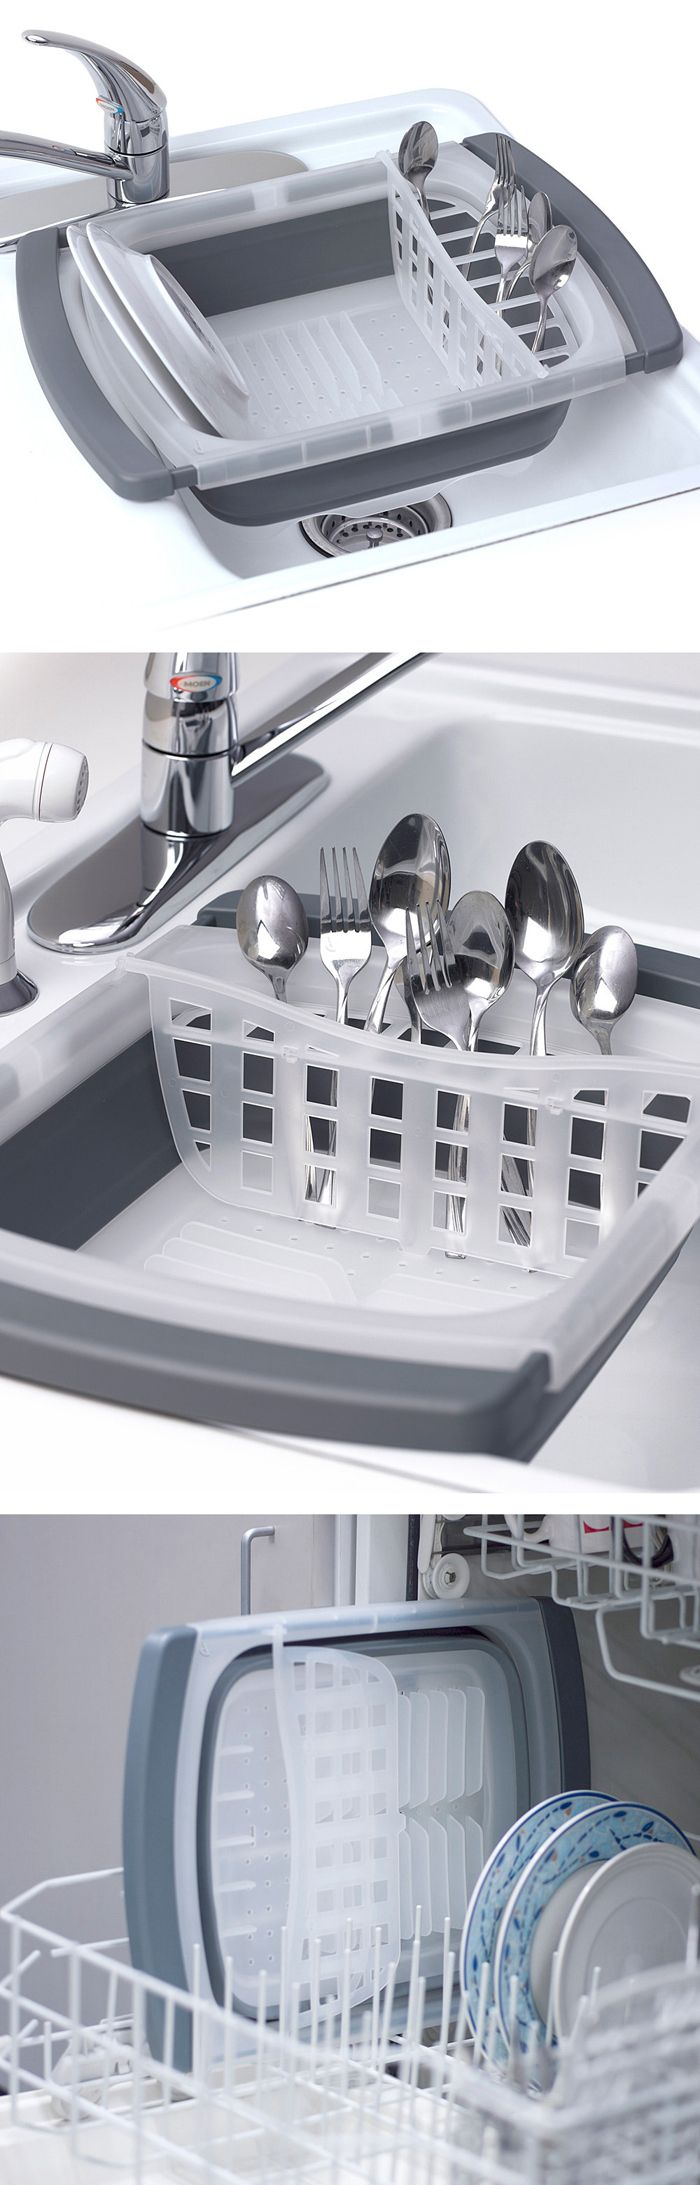 Collapsible Over-the-Sink Dish Drainer // saves space, dishwasher safe - clever!